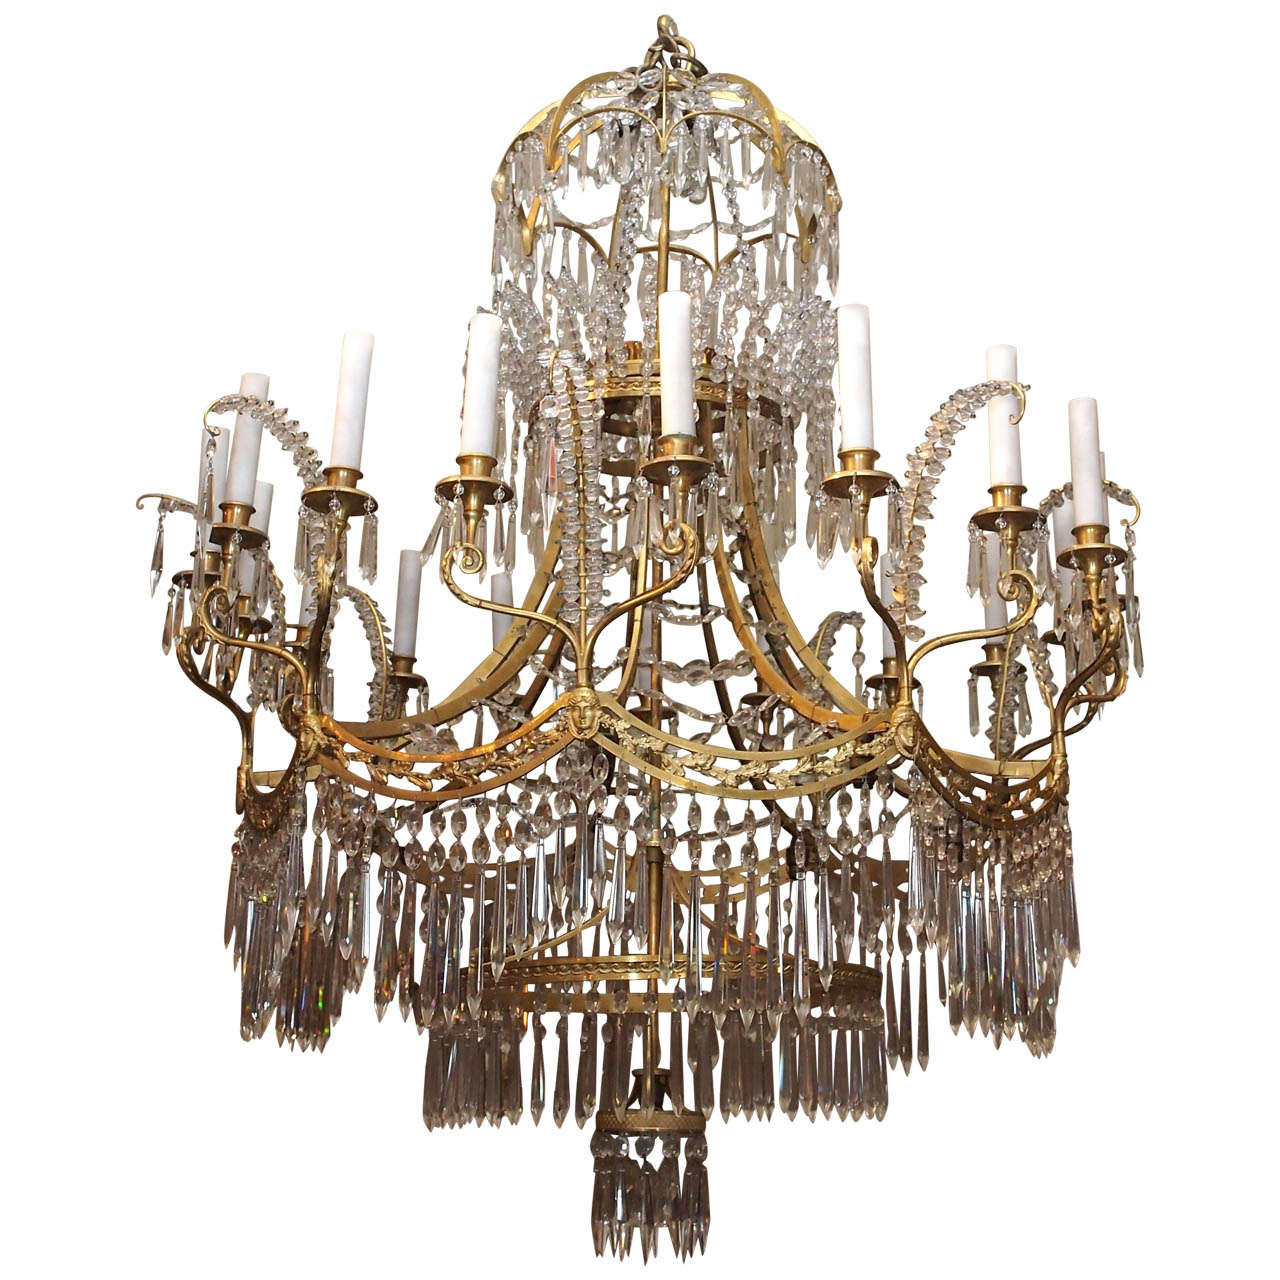 Antique Crystal and Ormolu Late 19th Baltic Century Chandelier For Sale - Antique Crystal And Ormolu Late 19th Baltic Century Chandelier For